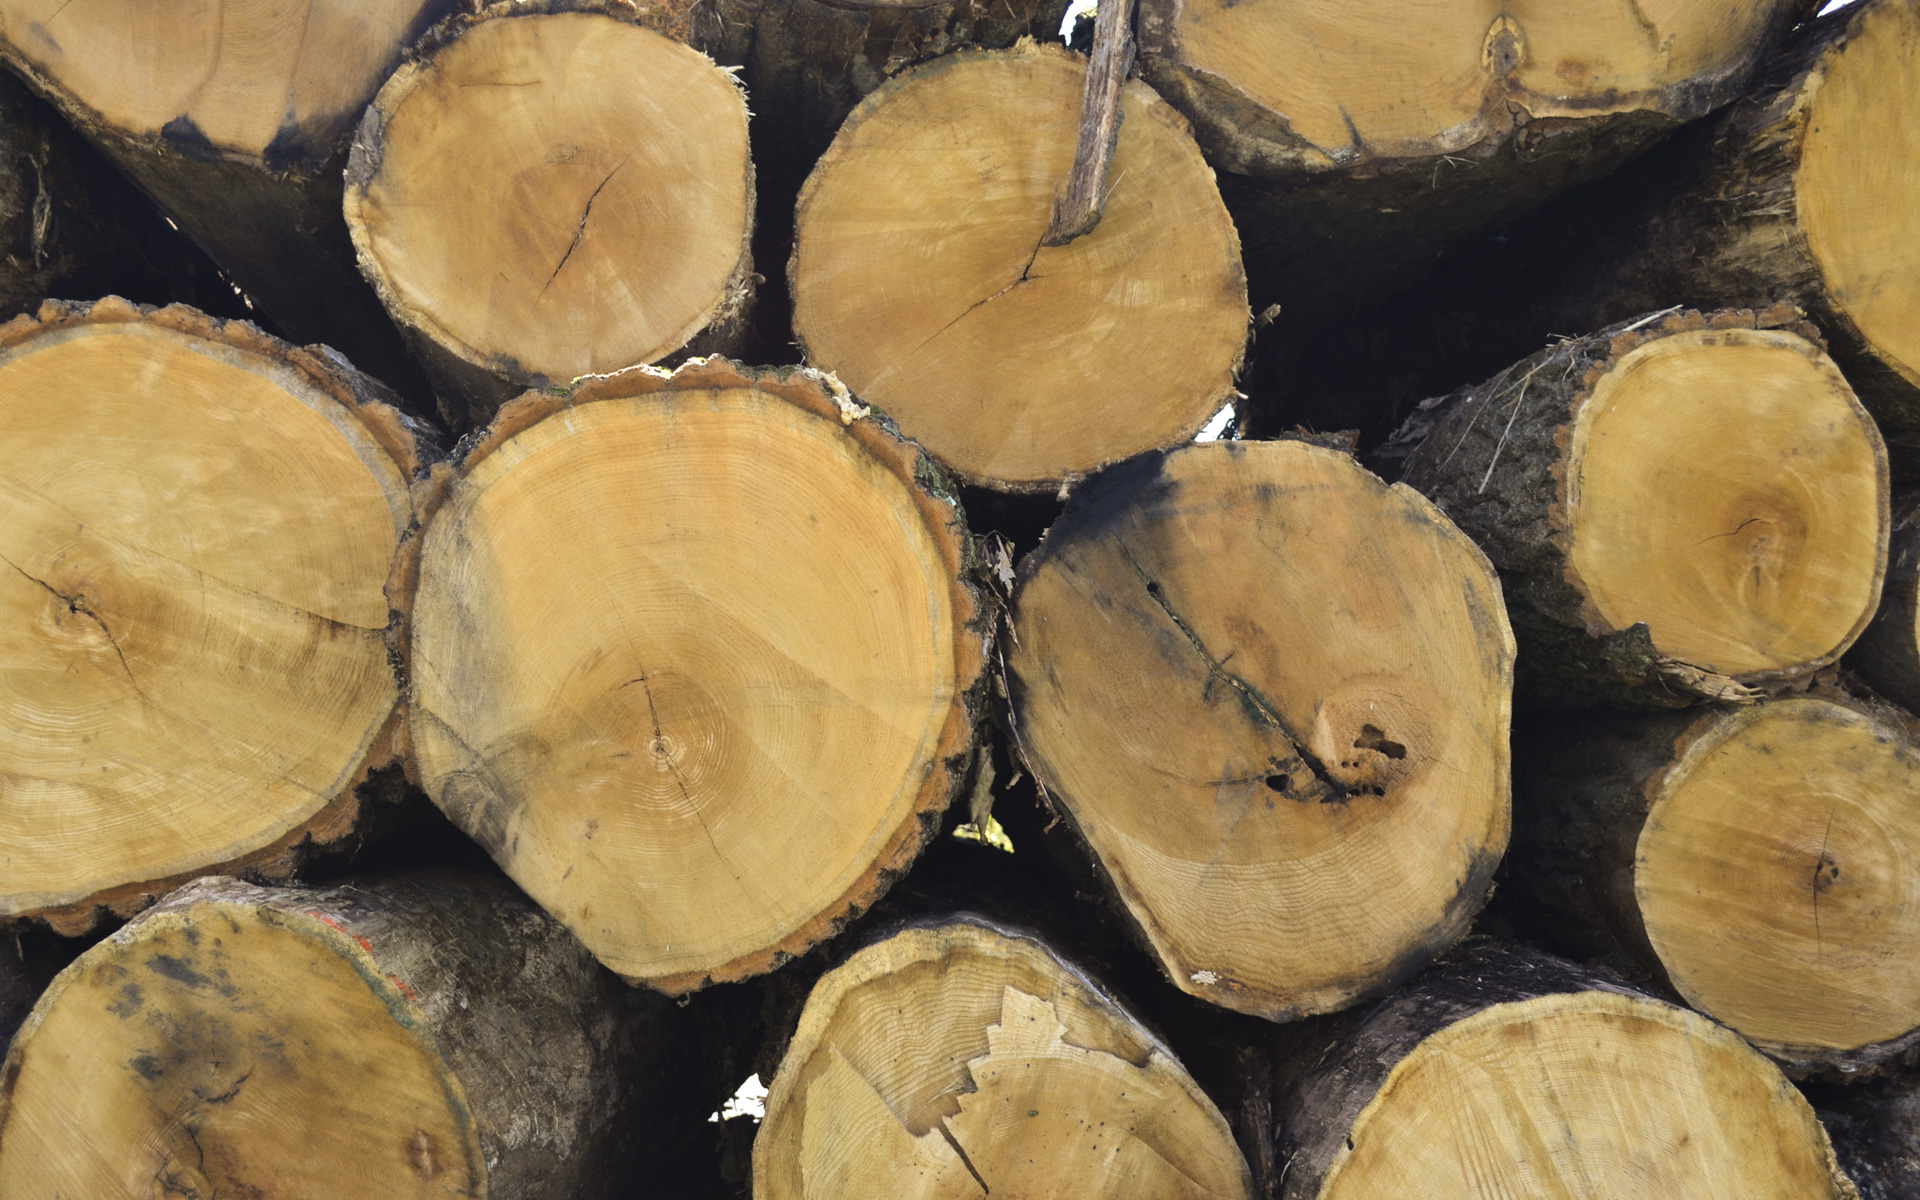 Cross-sectional cut end of logs that were harvested for lumber